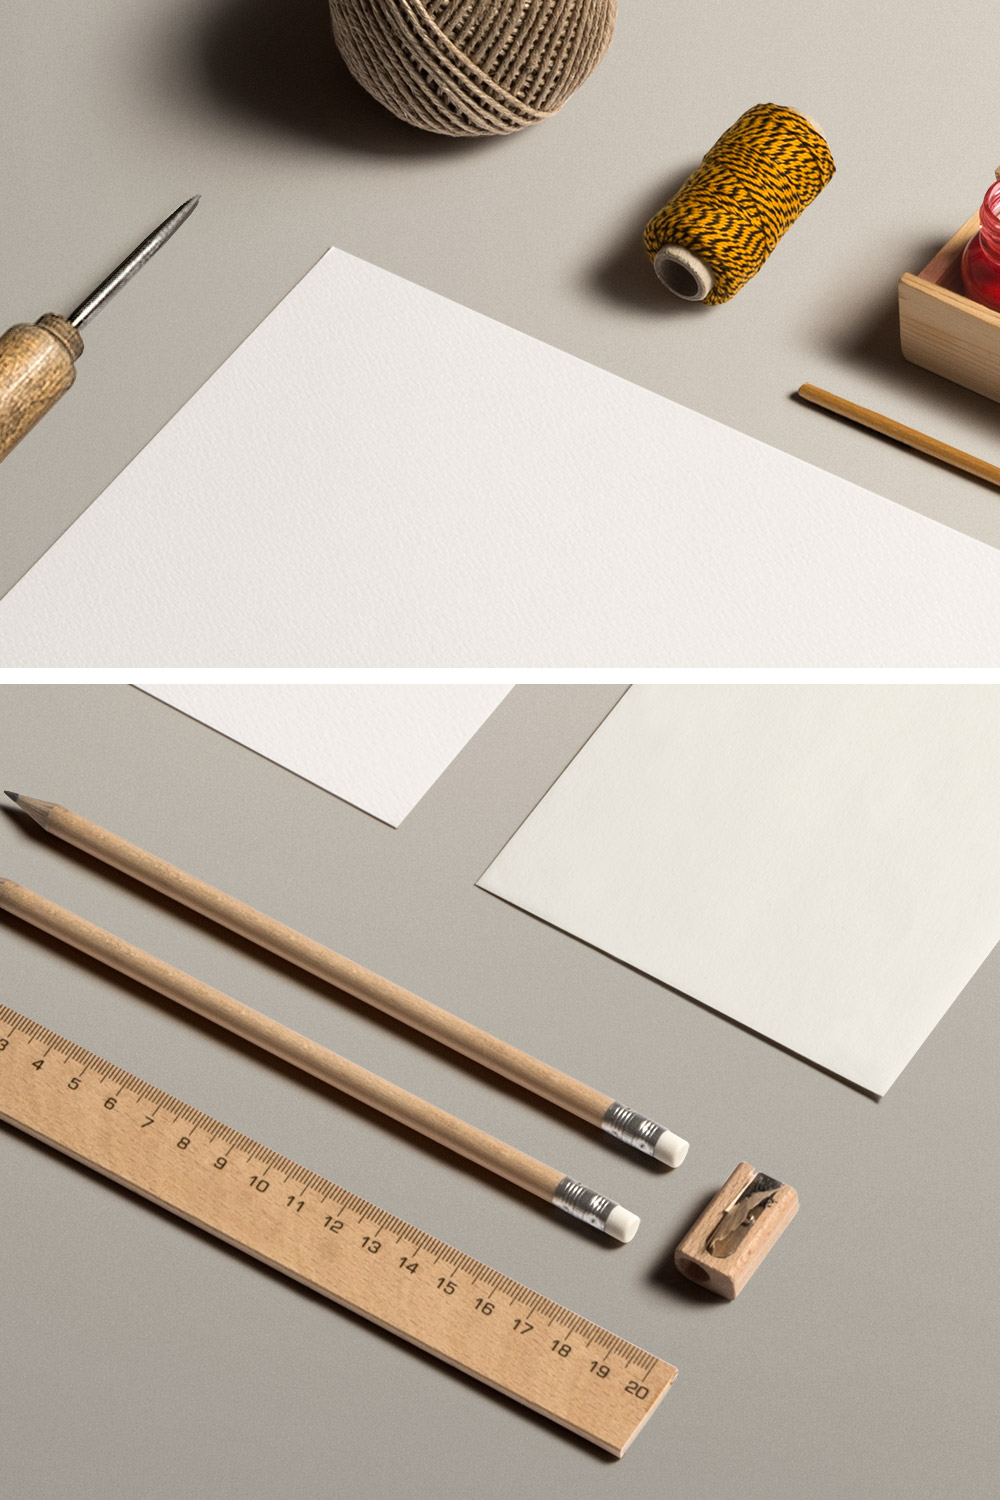 http://www.graphicsfuel.com/wp-content/uploads/2015/05/stationery-mockup-art-craft.jpg